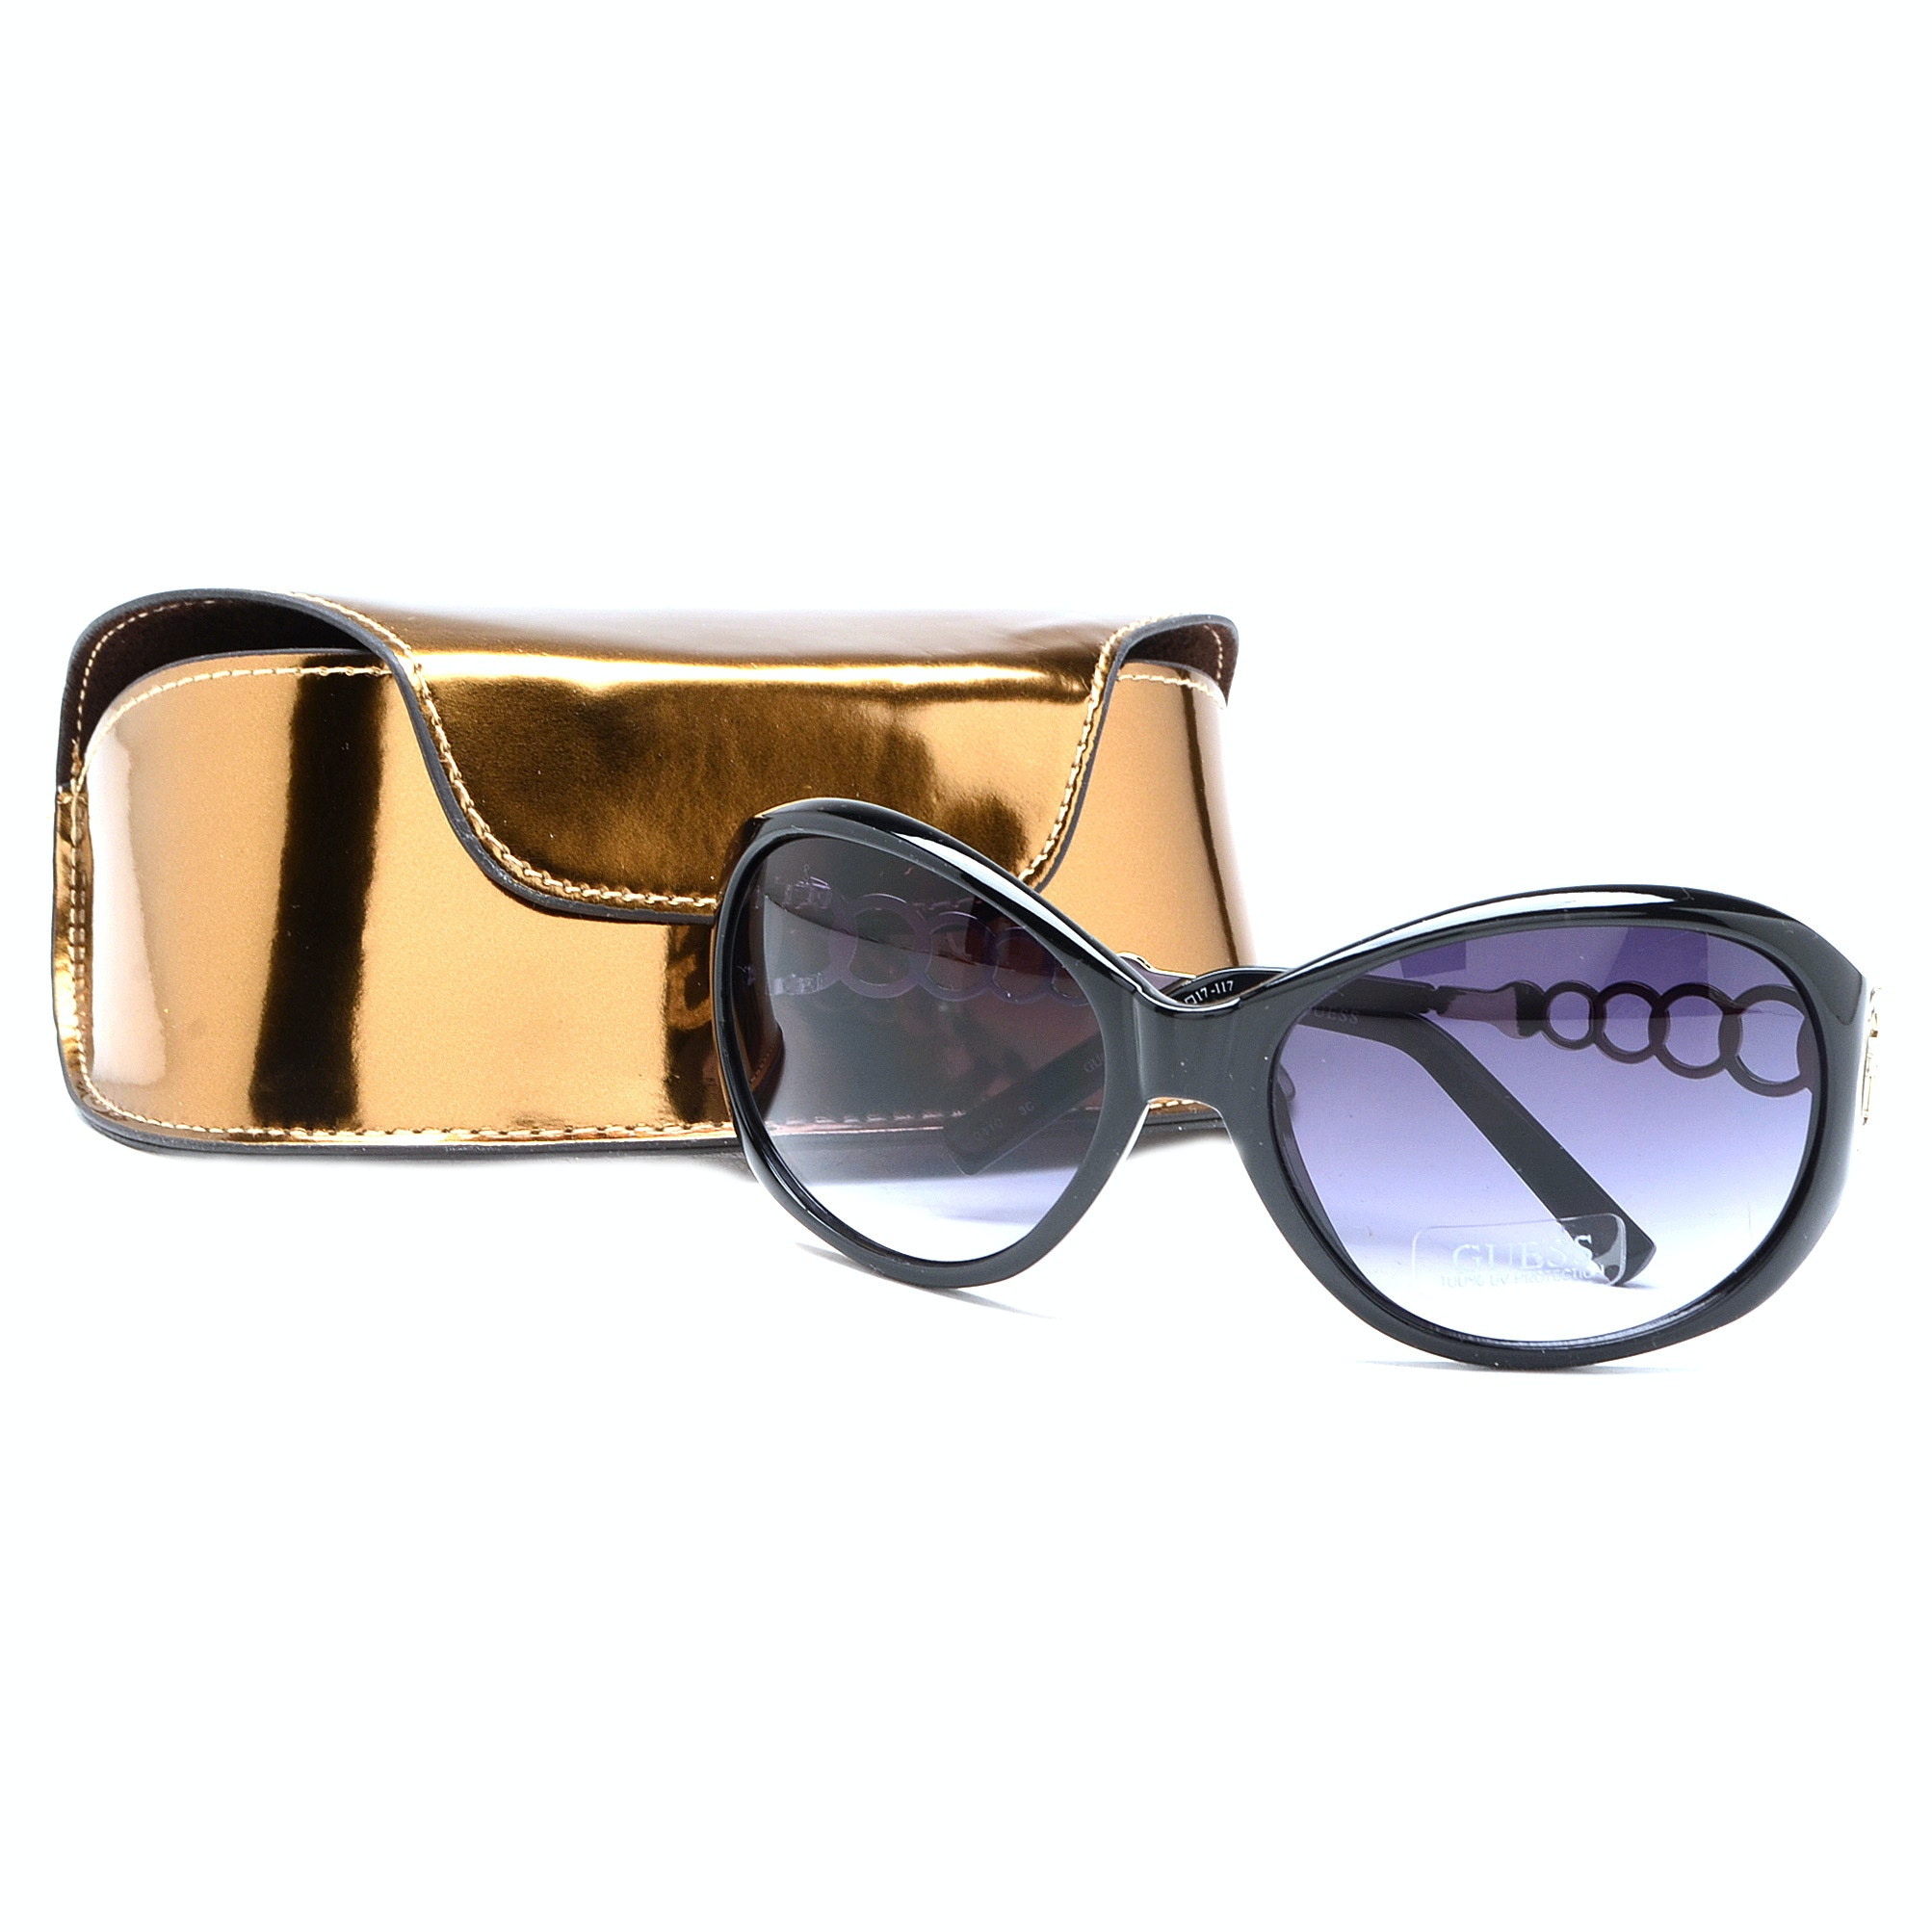 Pair of Guess Sunglasses with Signature Case